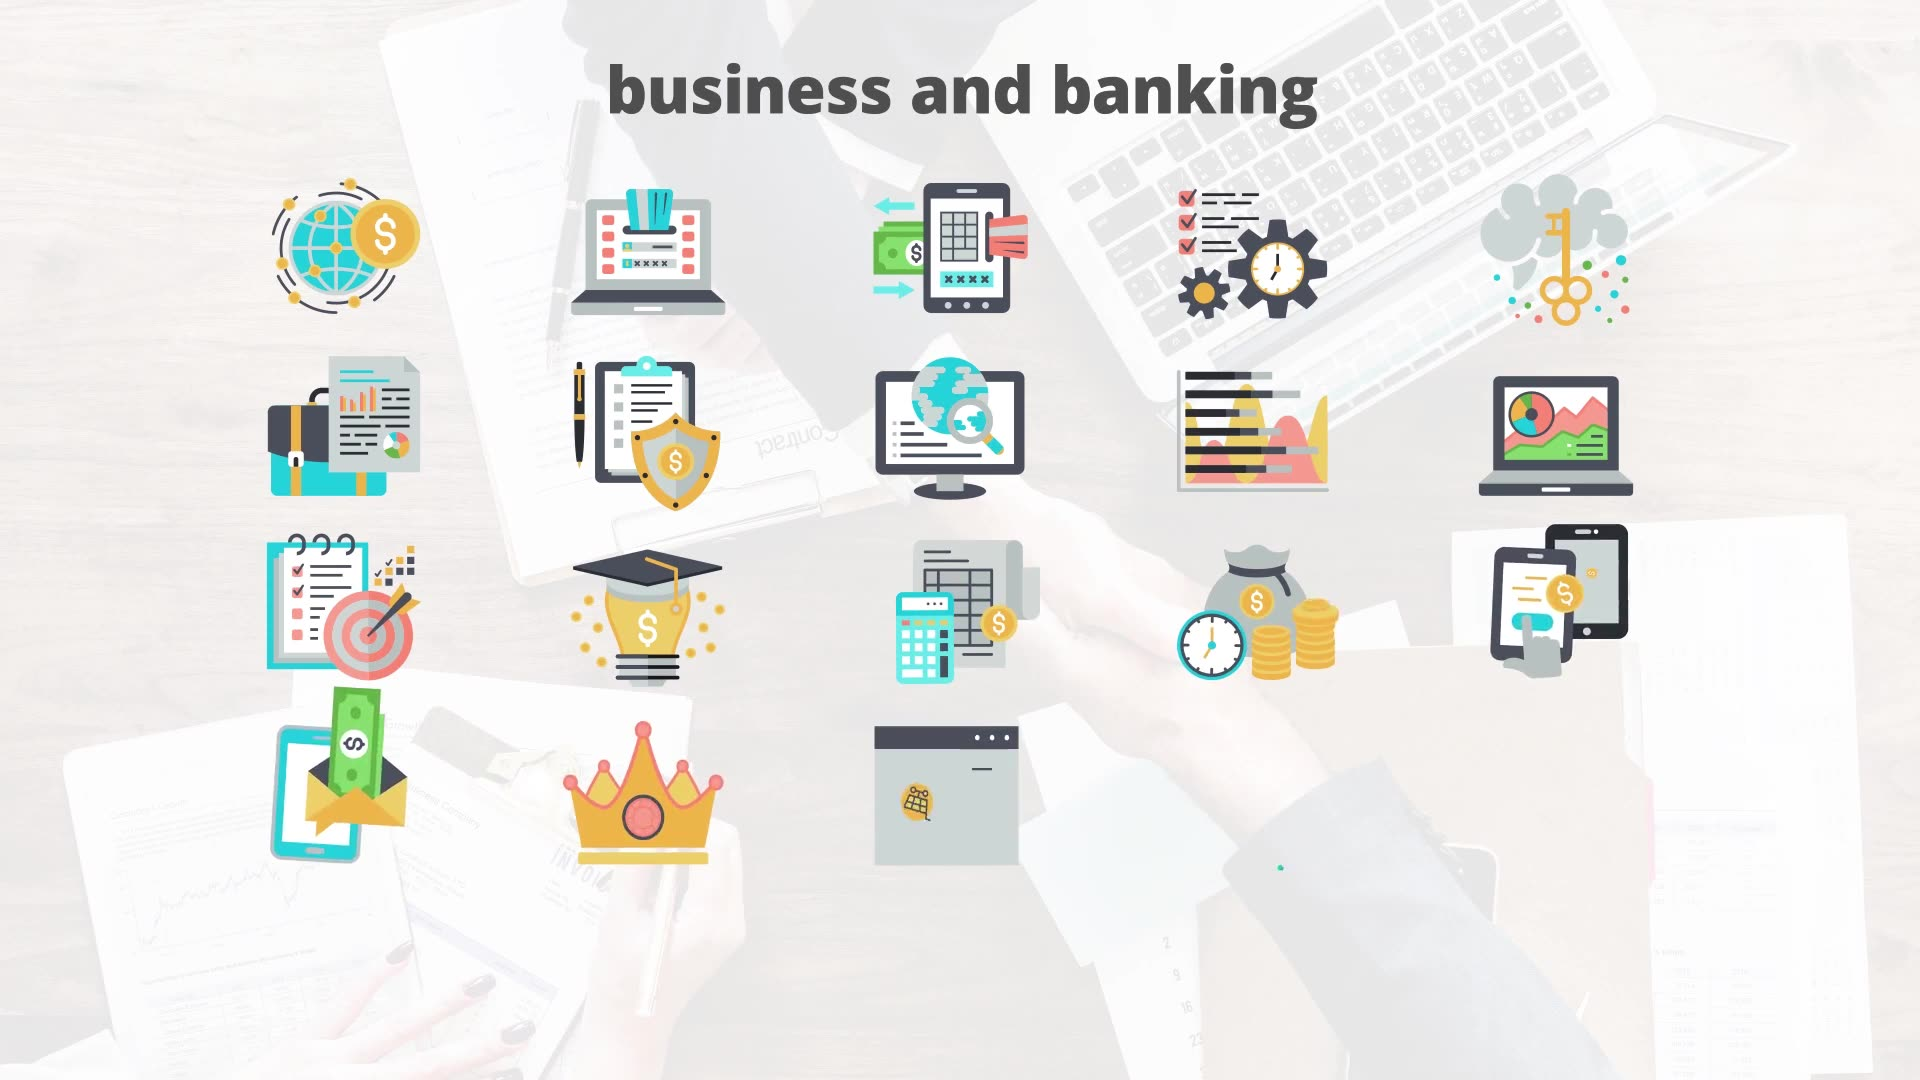 Business And Banking Flat Animation Icons - Download Videohive 23465873